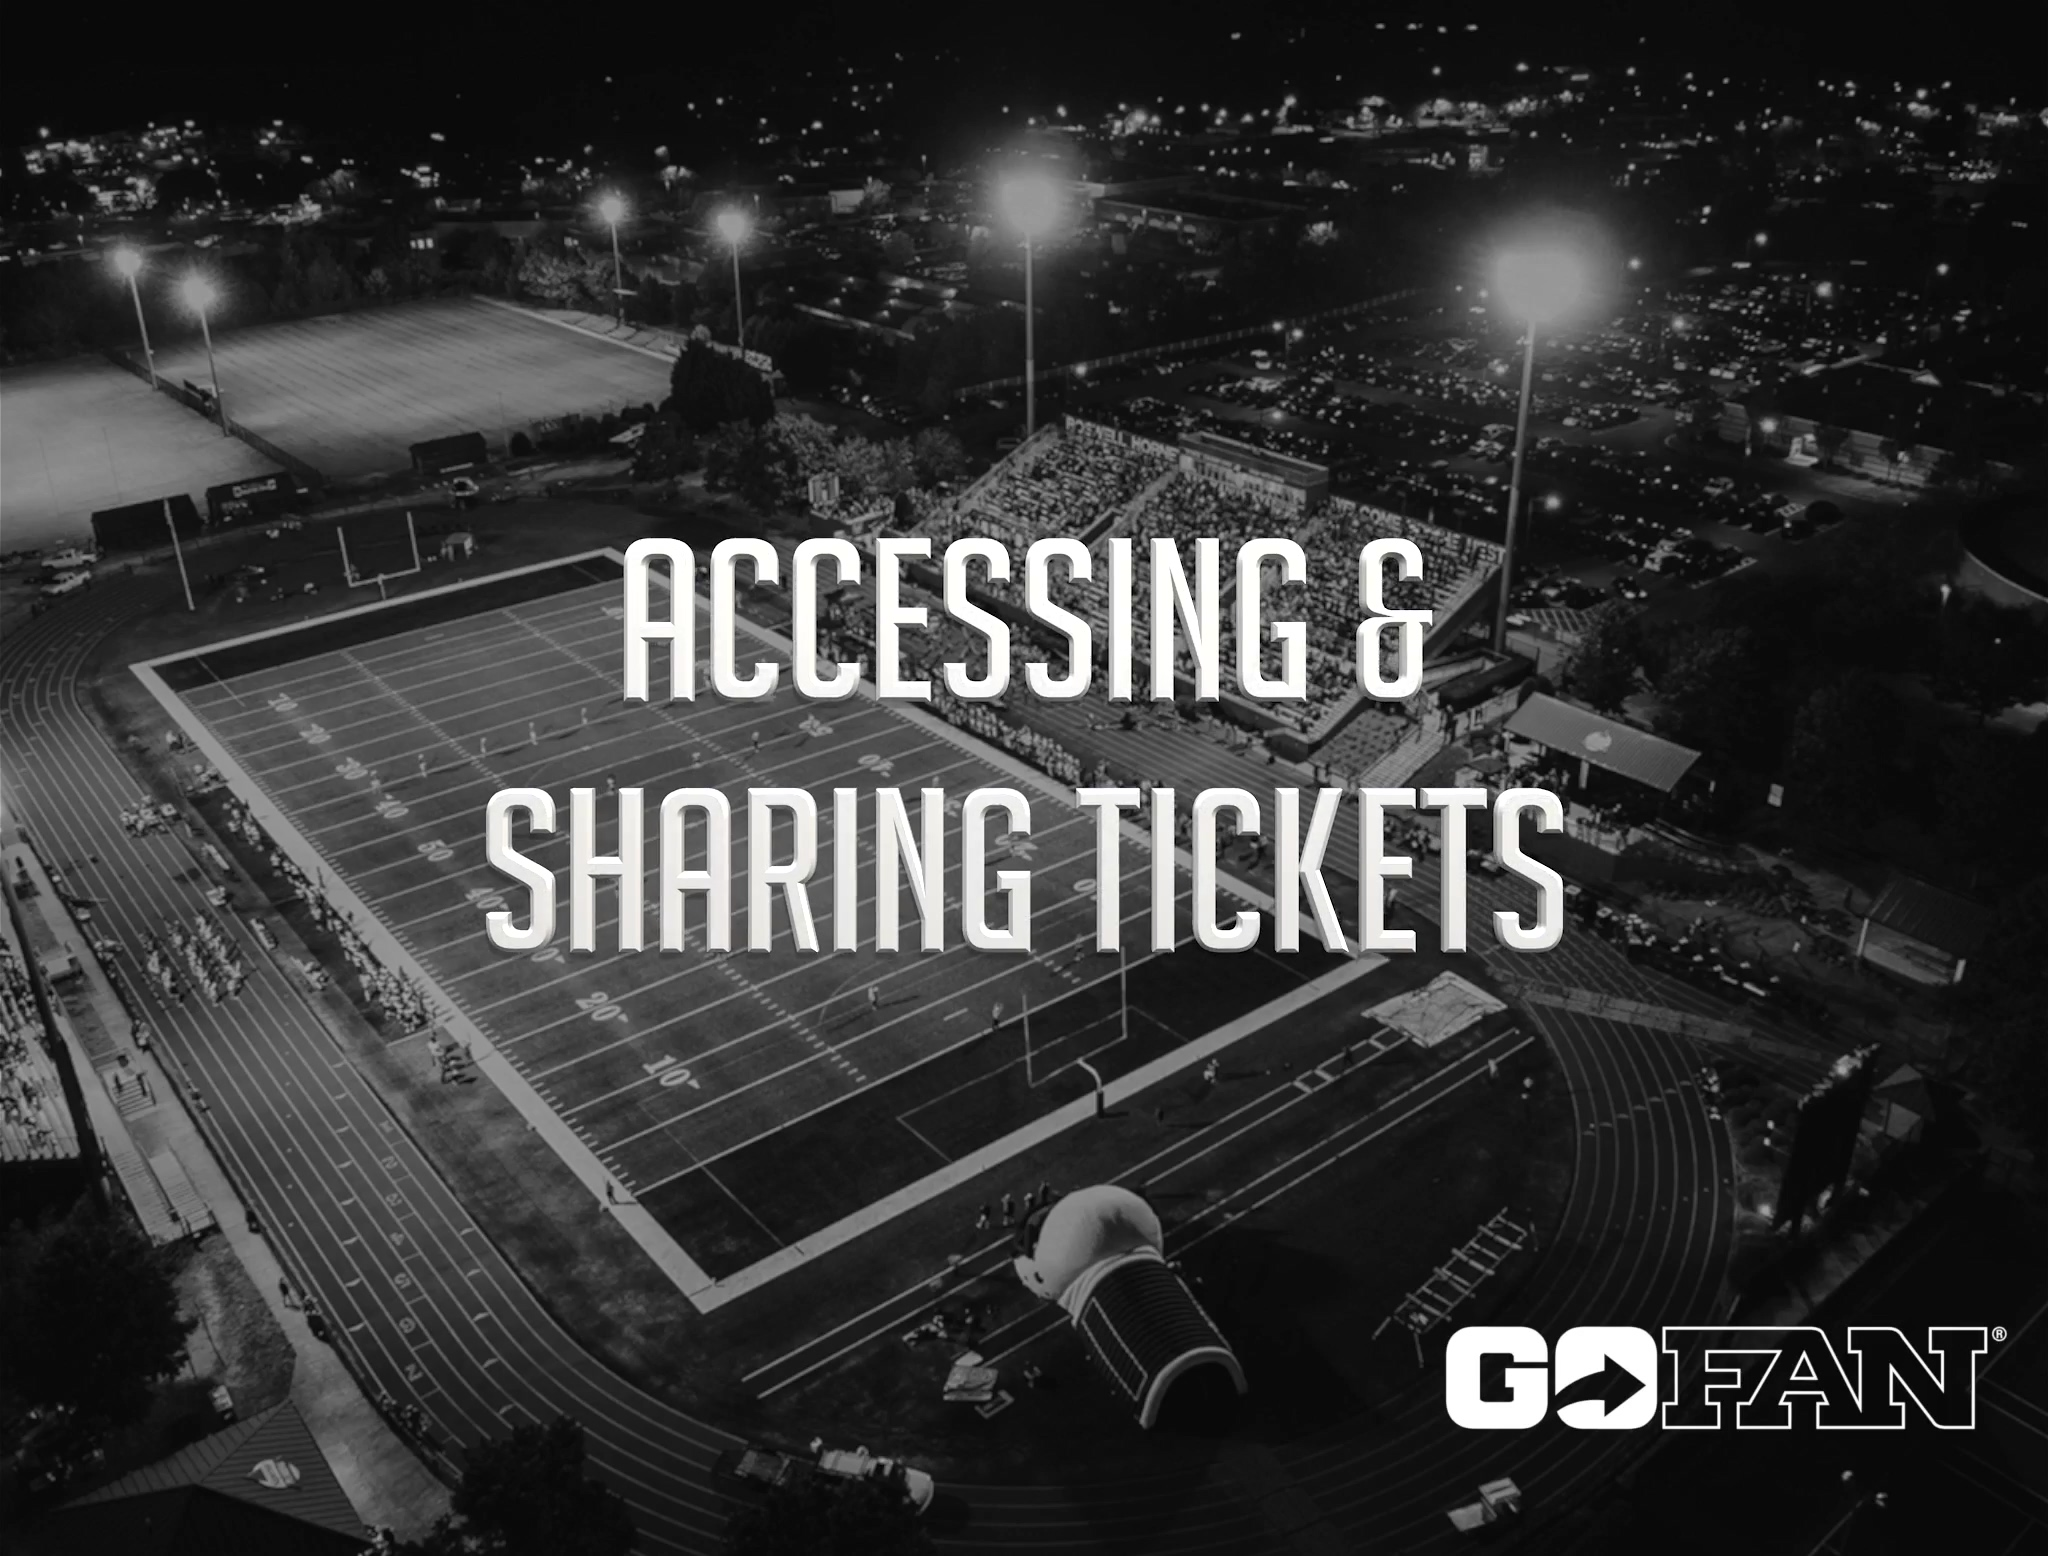 Accessing & Sharing Tickets